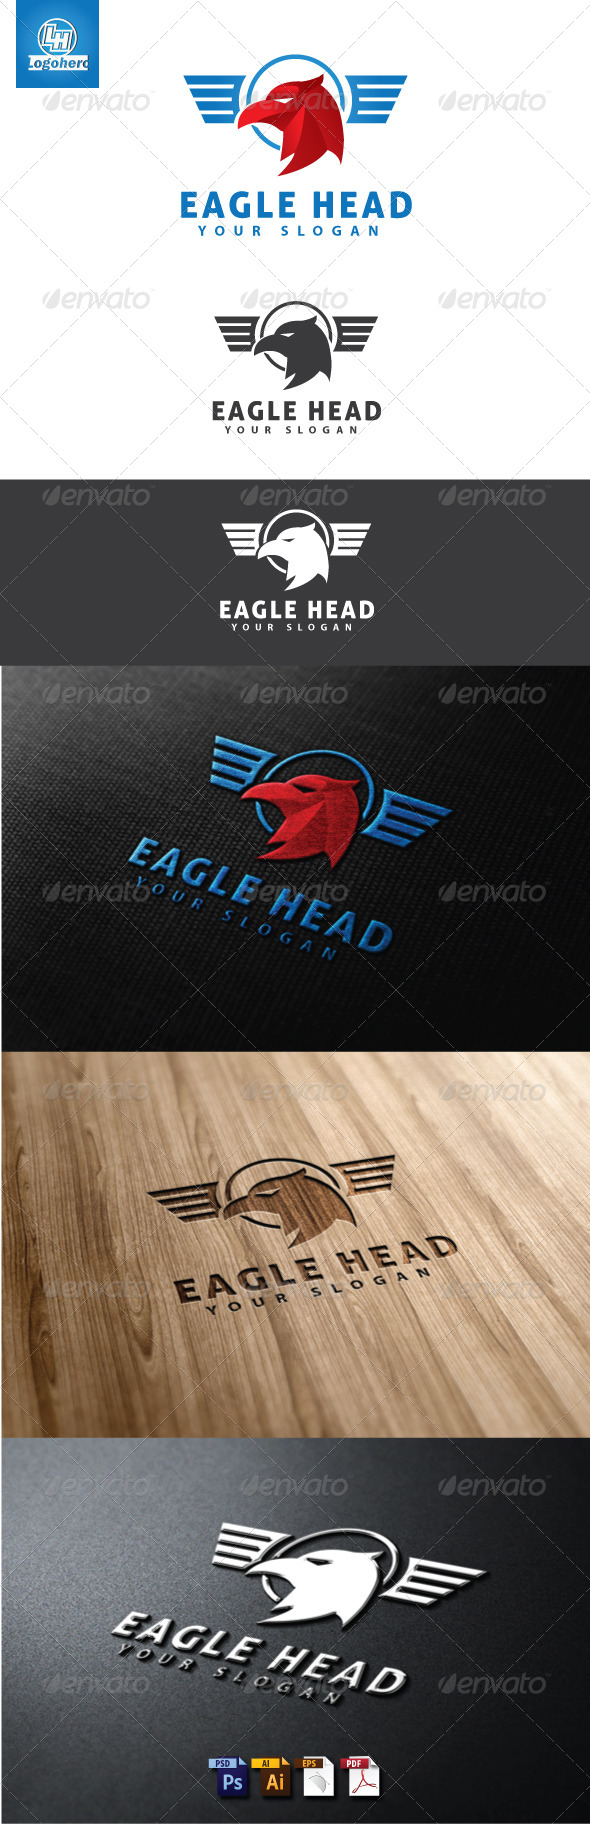 GraphicRiver Eagle Head Logo Template 4641546